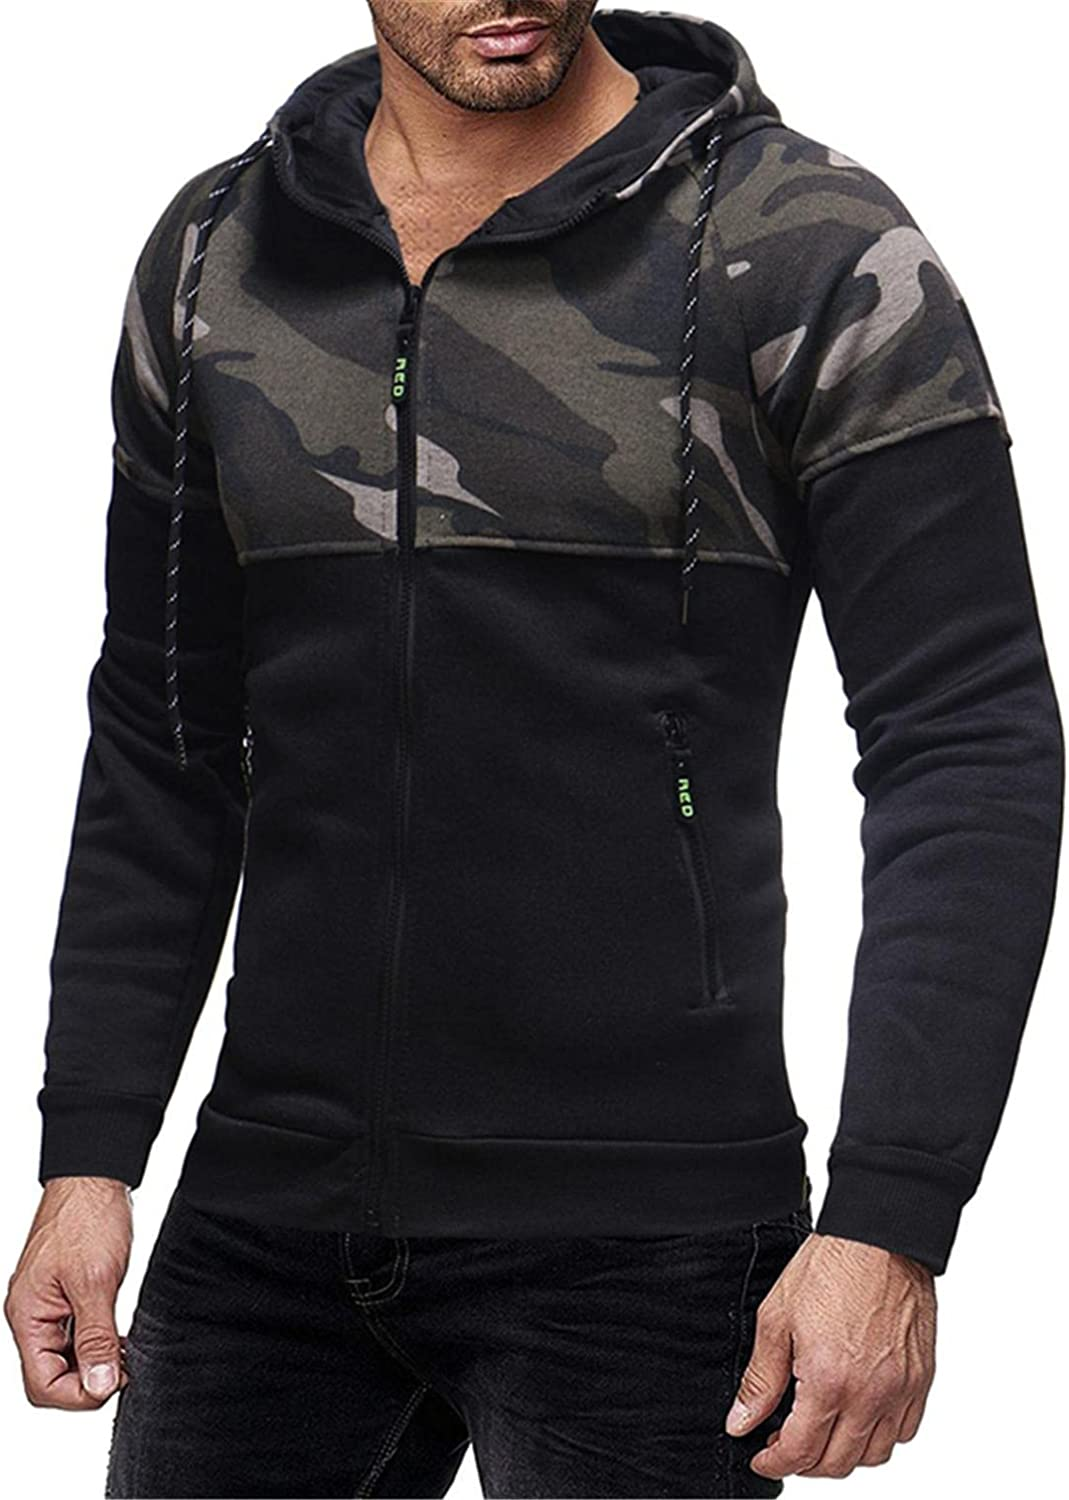 Qsctys Mens Sweatshirts Hoodies Zip up Casual Retro Camouflage Patchwork Fashion Sports Jackets College Pullover Hooded